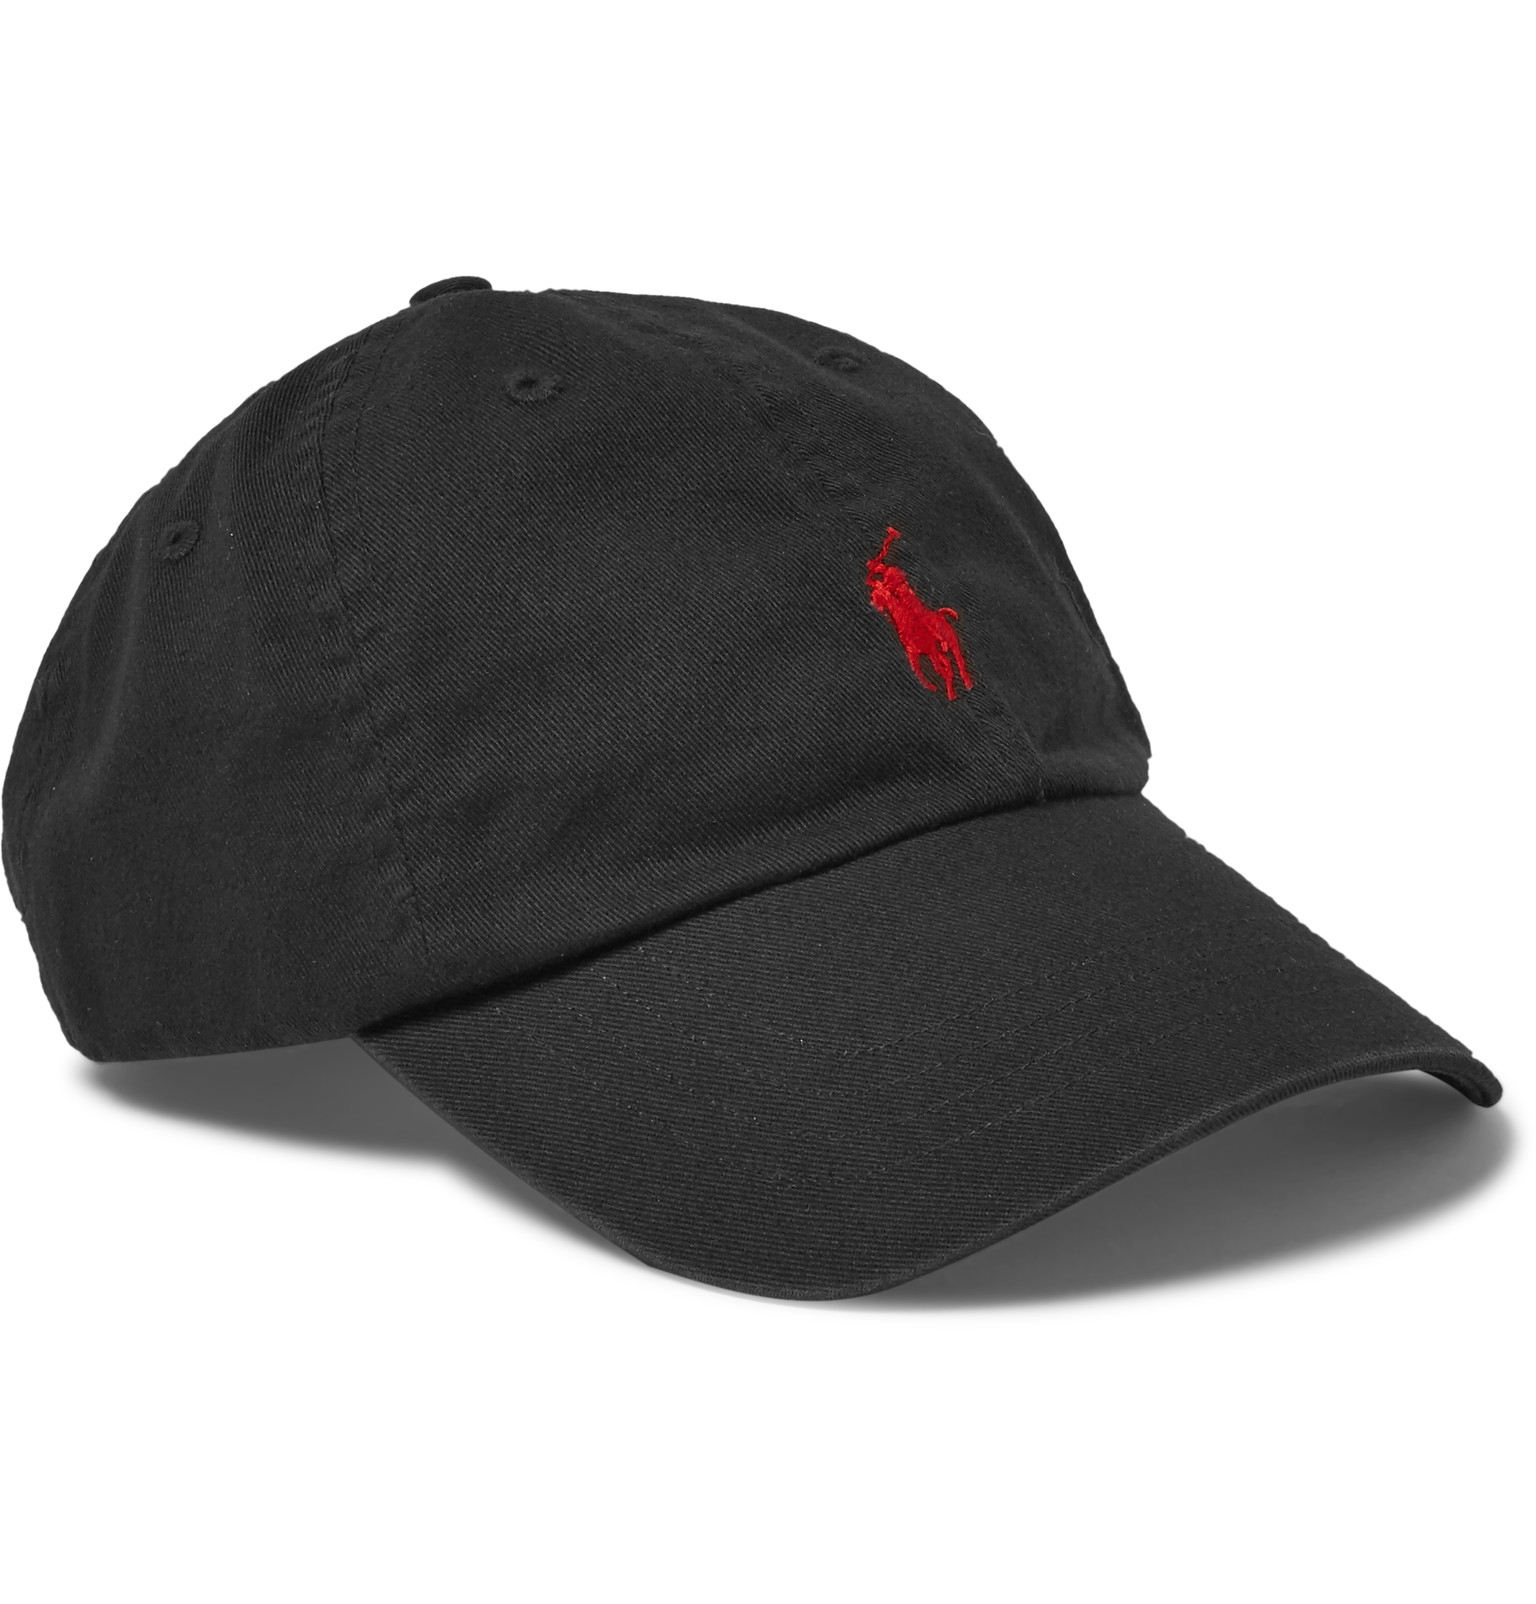 polo ralph lauren cotton twill baseball cap in black for. Black Bedroom Furniture Sets. Home Design Ideas